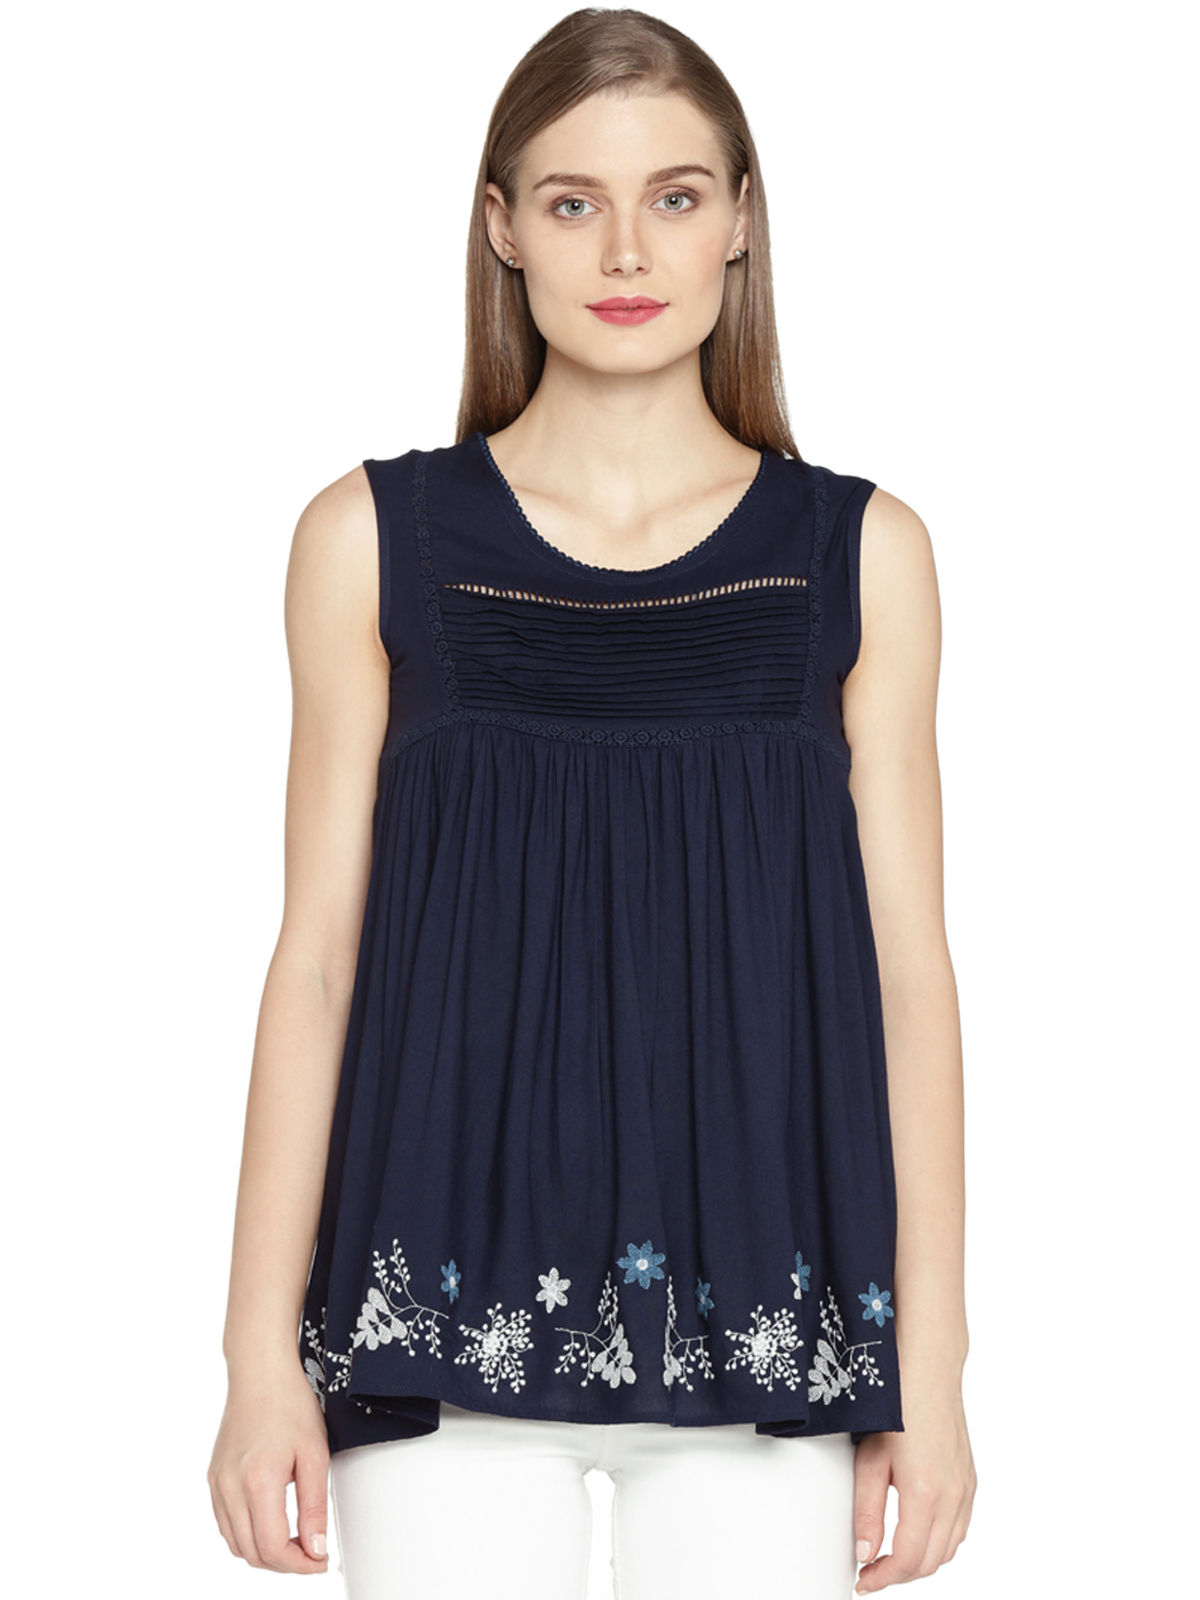 AGNES HEM EMBROIDERED TOP